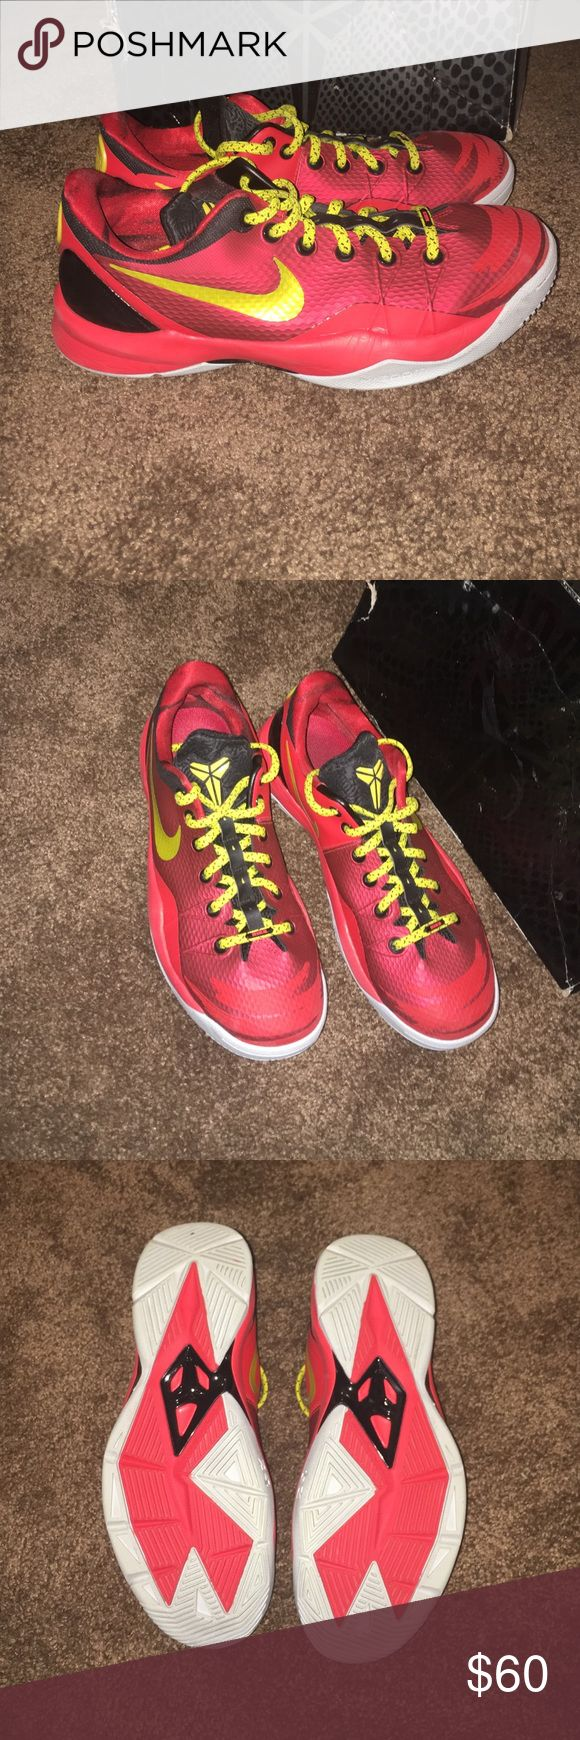 Kobe shoes men's size 8.5 women's size 10 Their in perfect condition worn like twice. The box they came in is a little destroyed from being stacked under other shoes. Nike Shoes Athletic Shoes